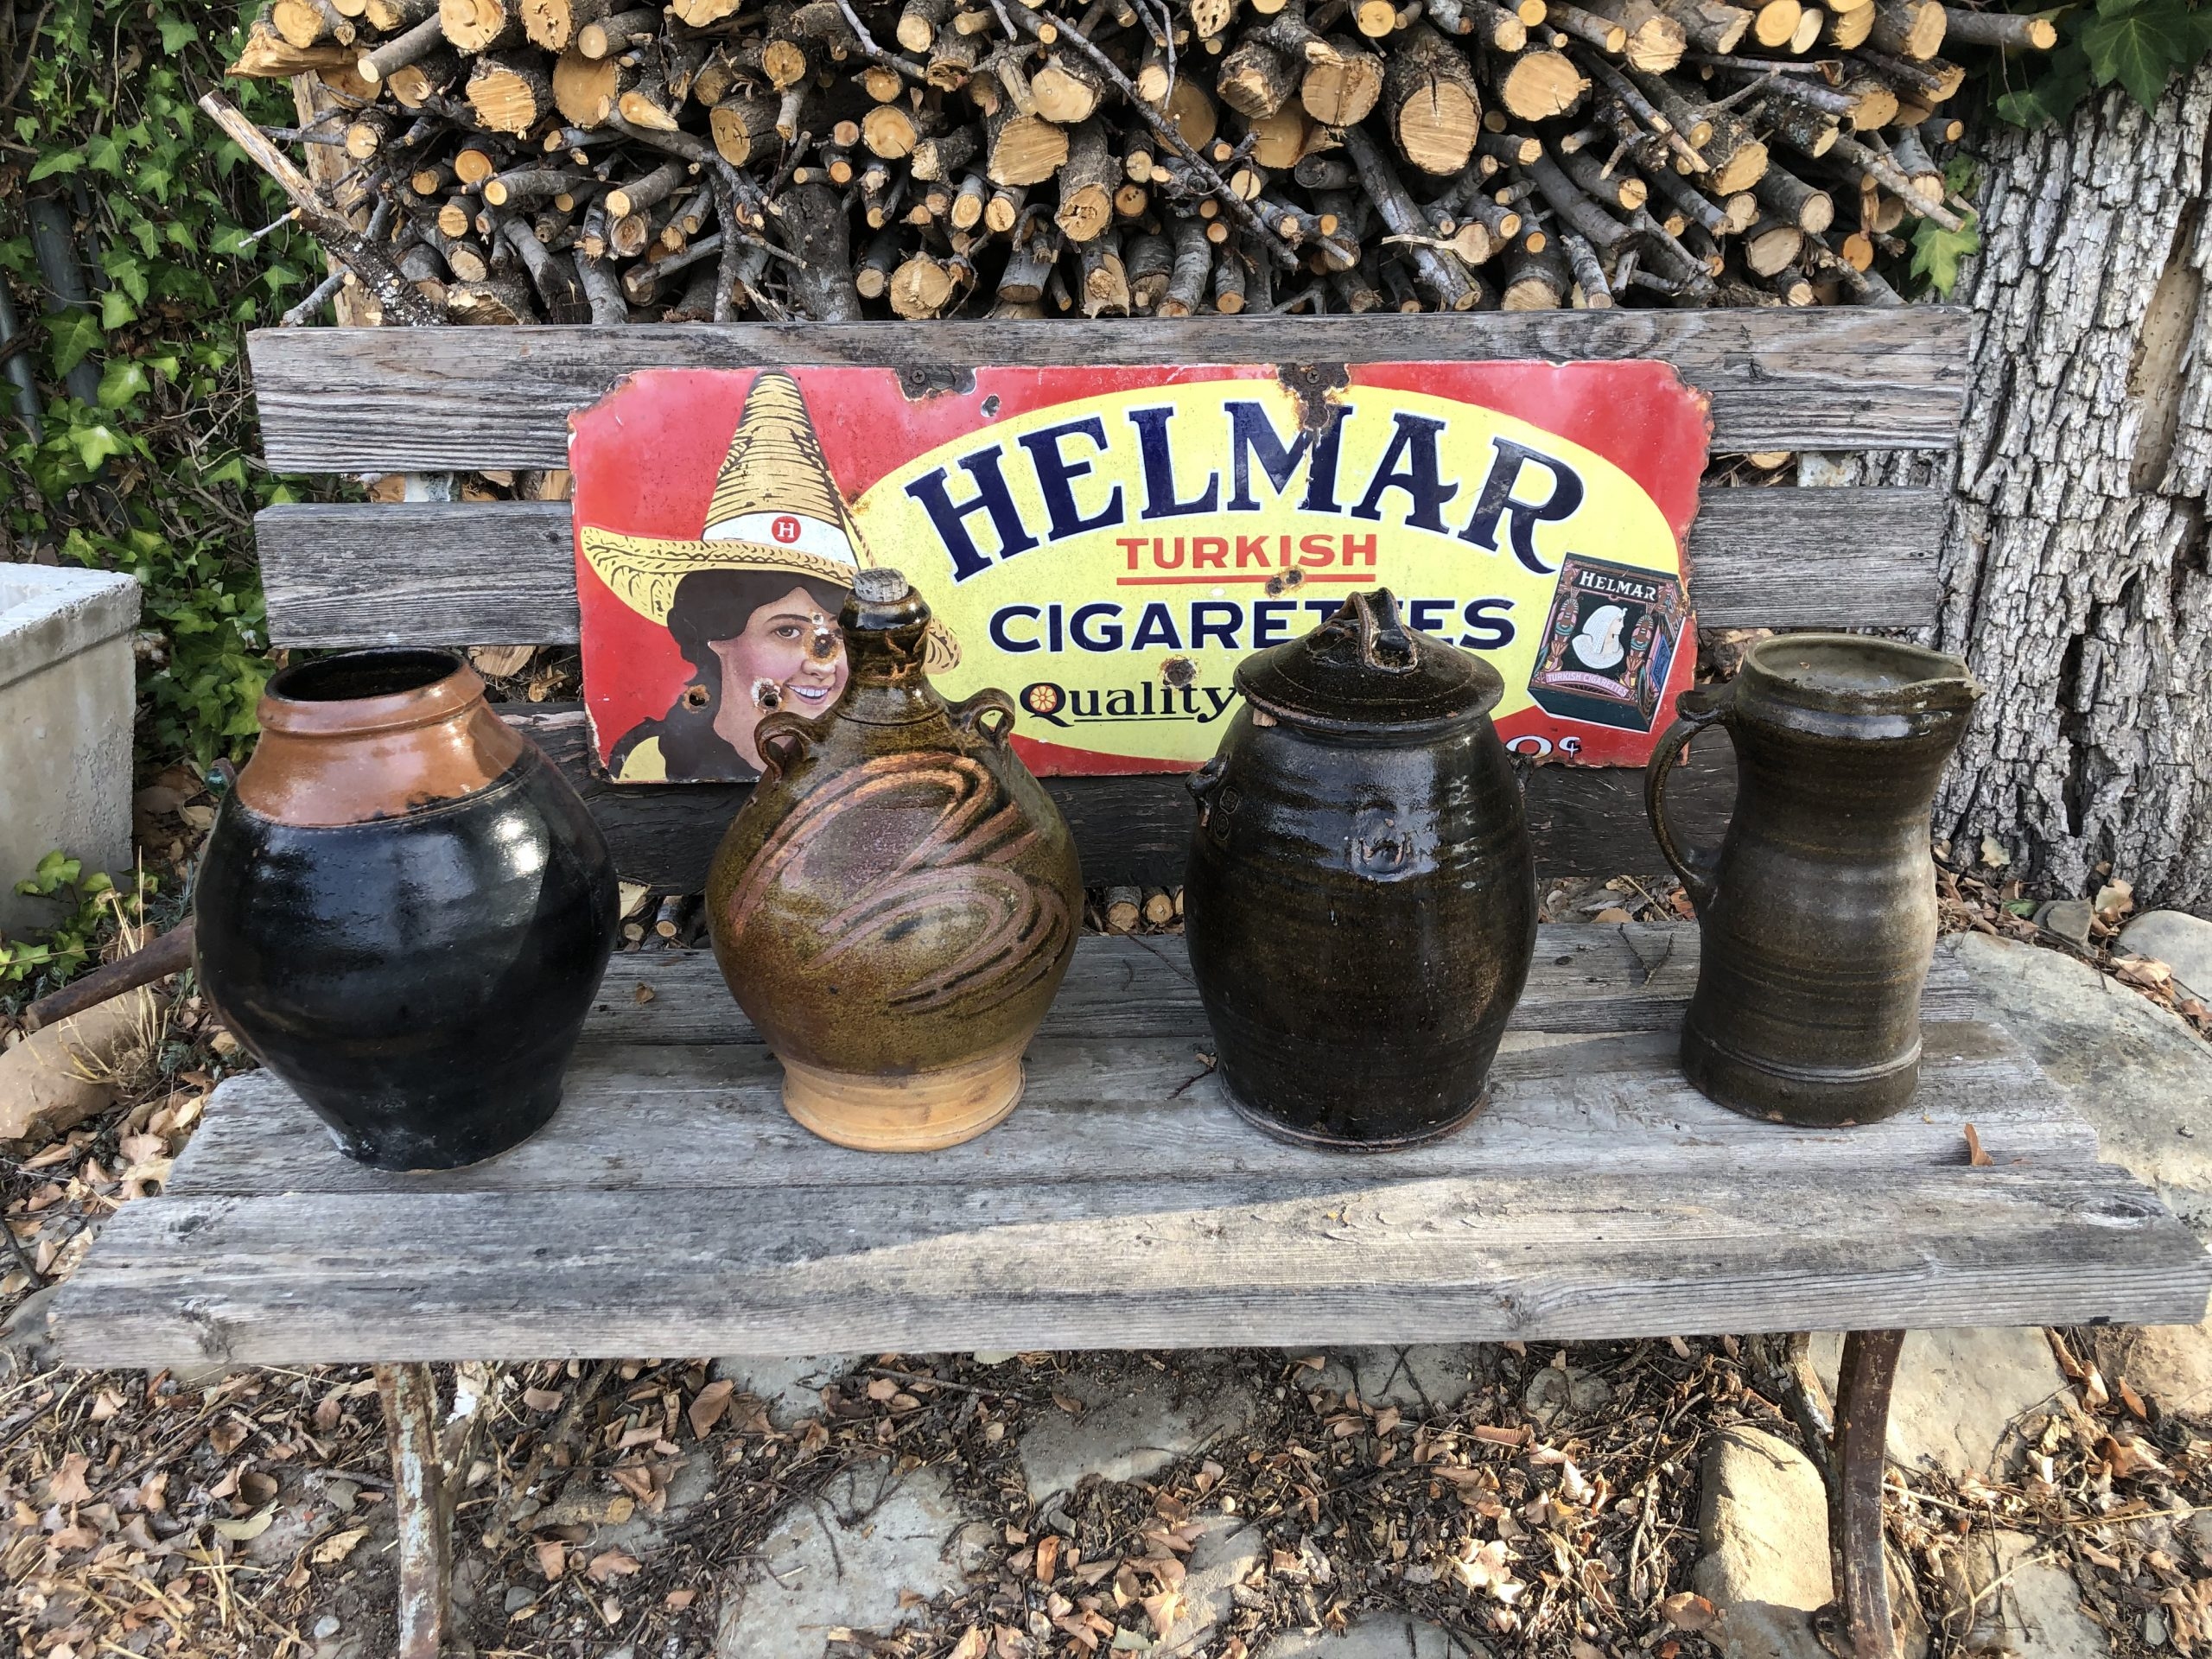 helmar turkish cigarettes sign on bench with antique pots